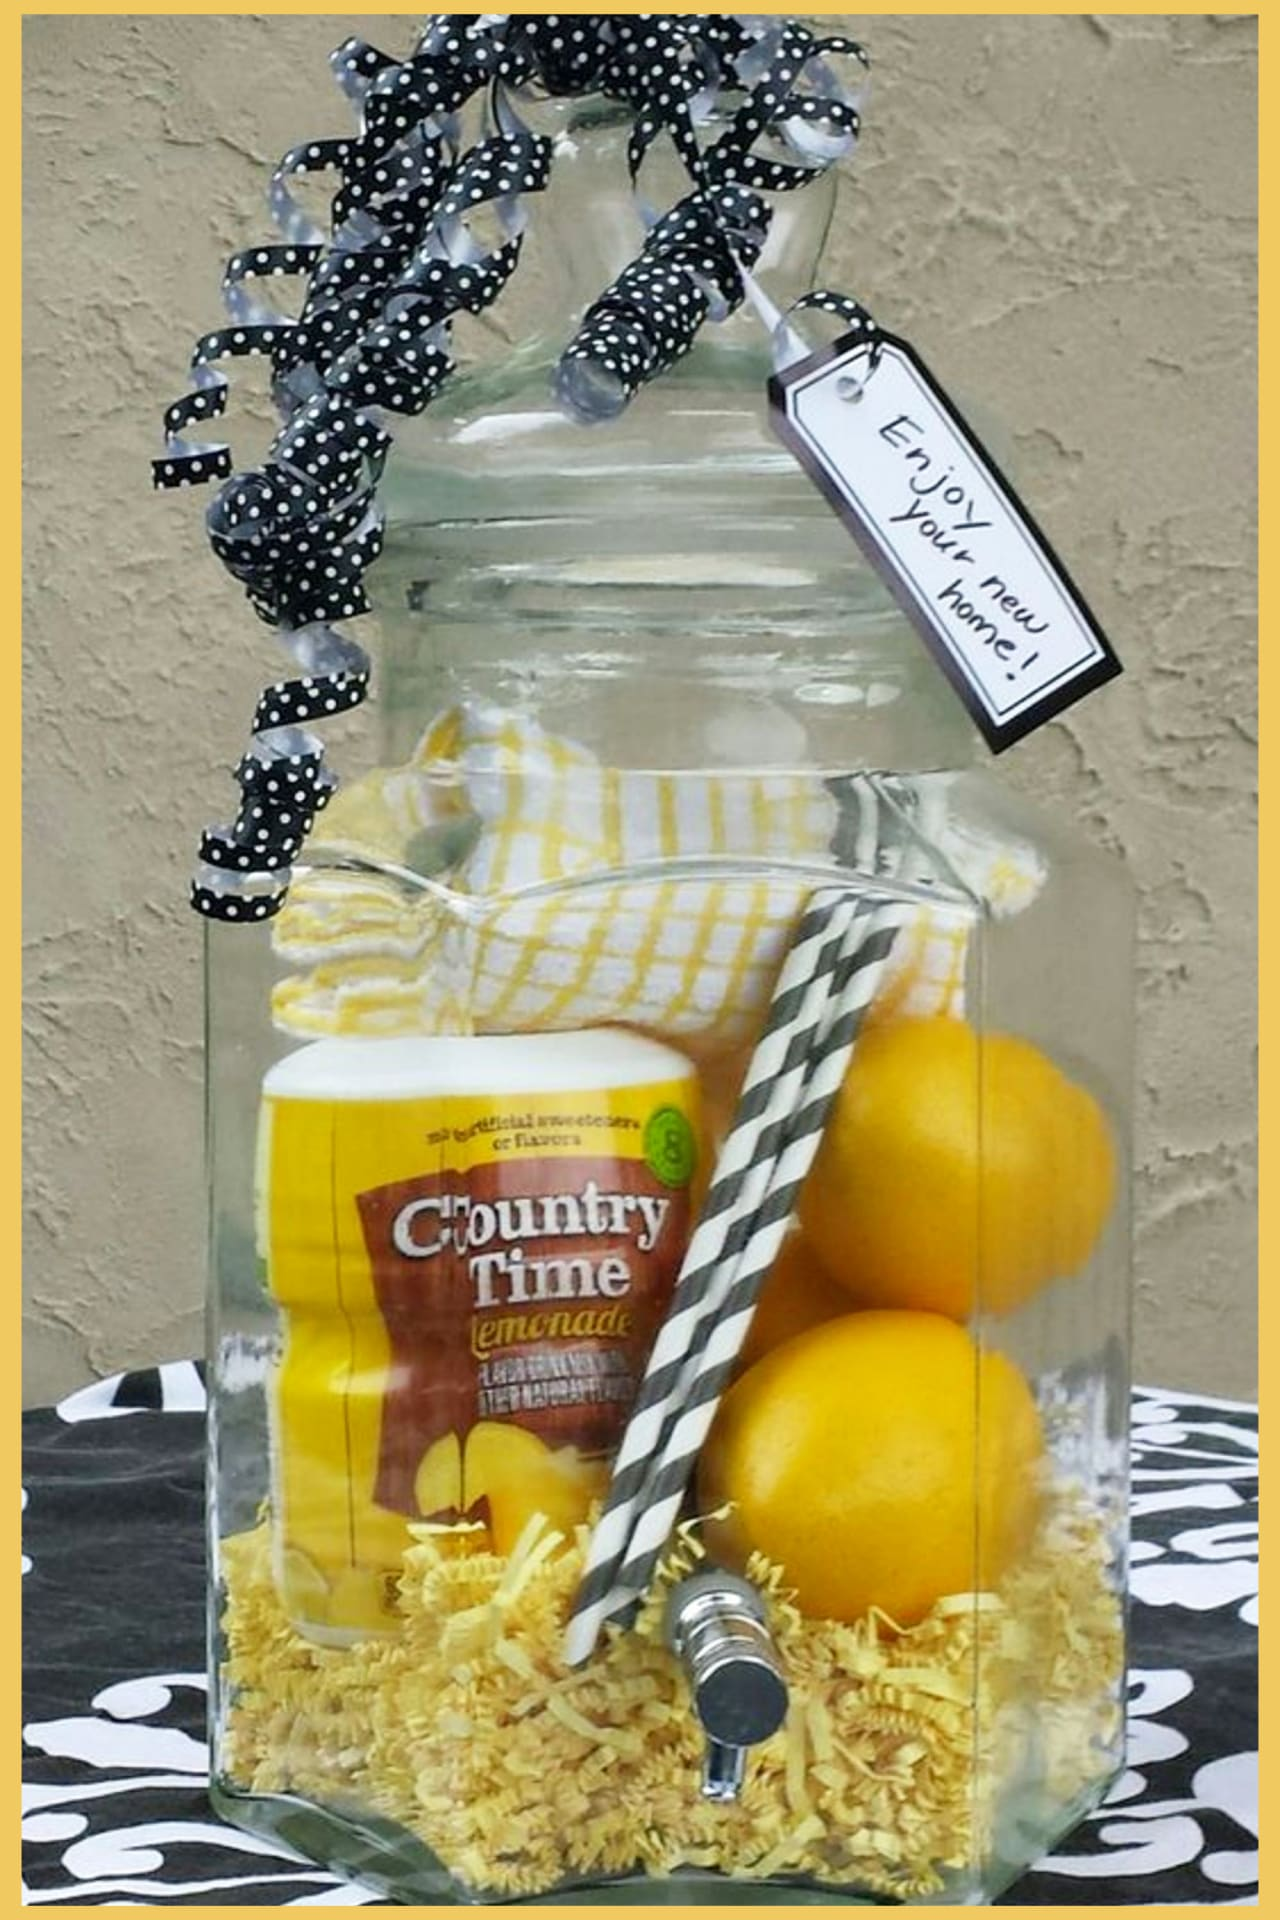 Housewarming Gifts For First Time Homeowners in Their First Home -Unique Housewarming Gift Ideas and DIY Housewarming Gifts They'll Love - First Time Home Buyer Gift Basket - lemonade gift basket ideas